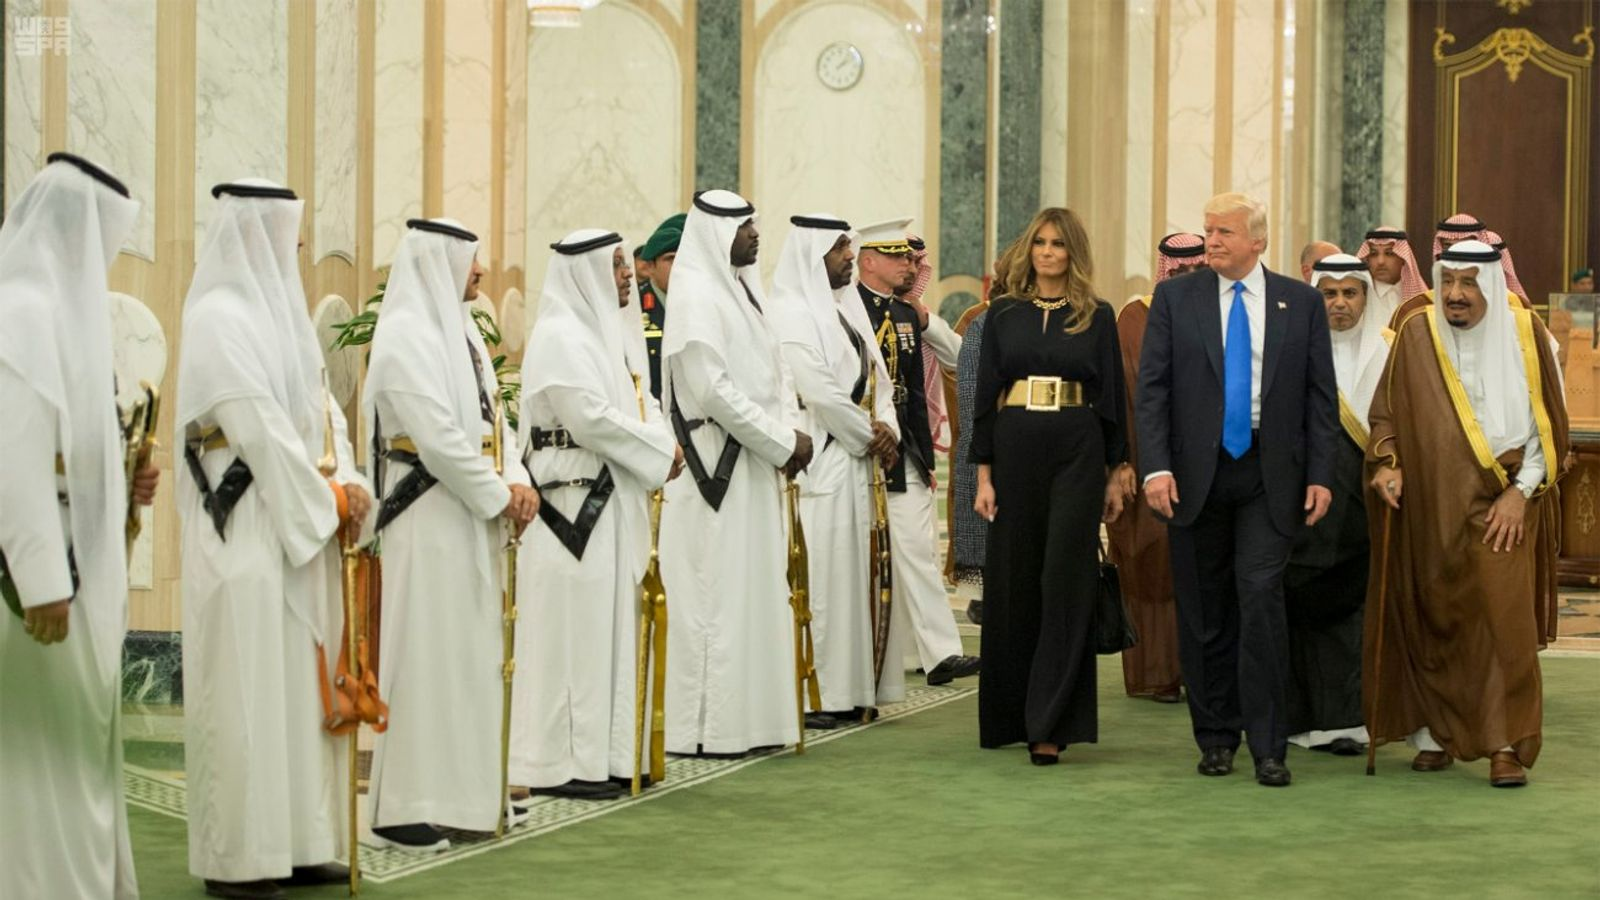 Gorgeous Ivanka Trump makes BIG impression on Saudi king during visit